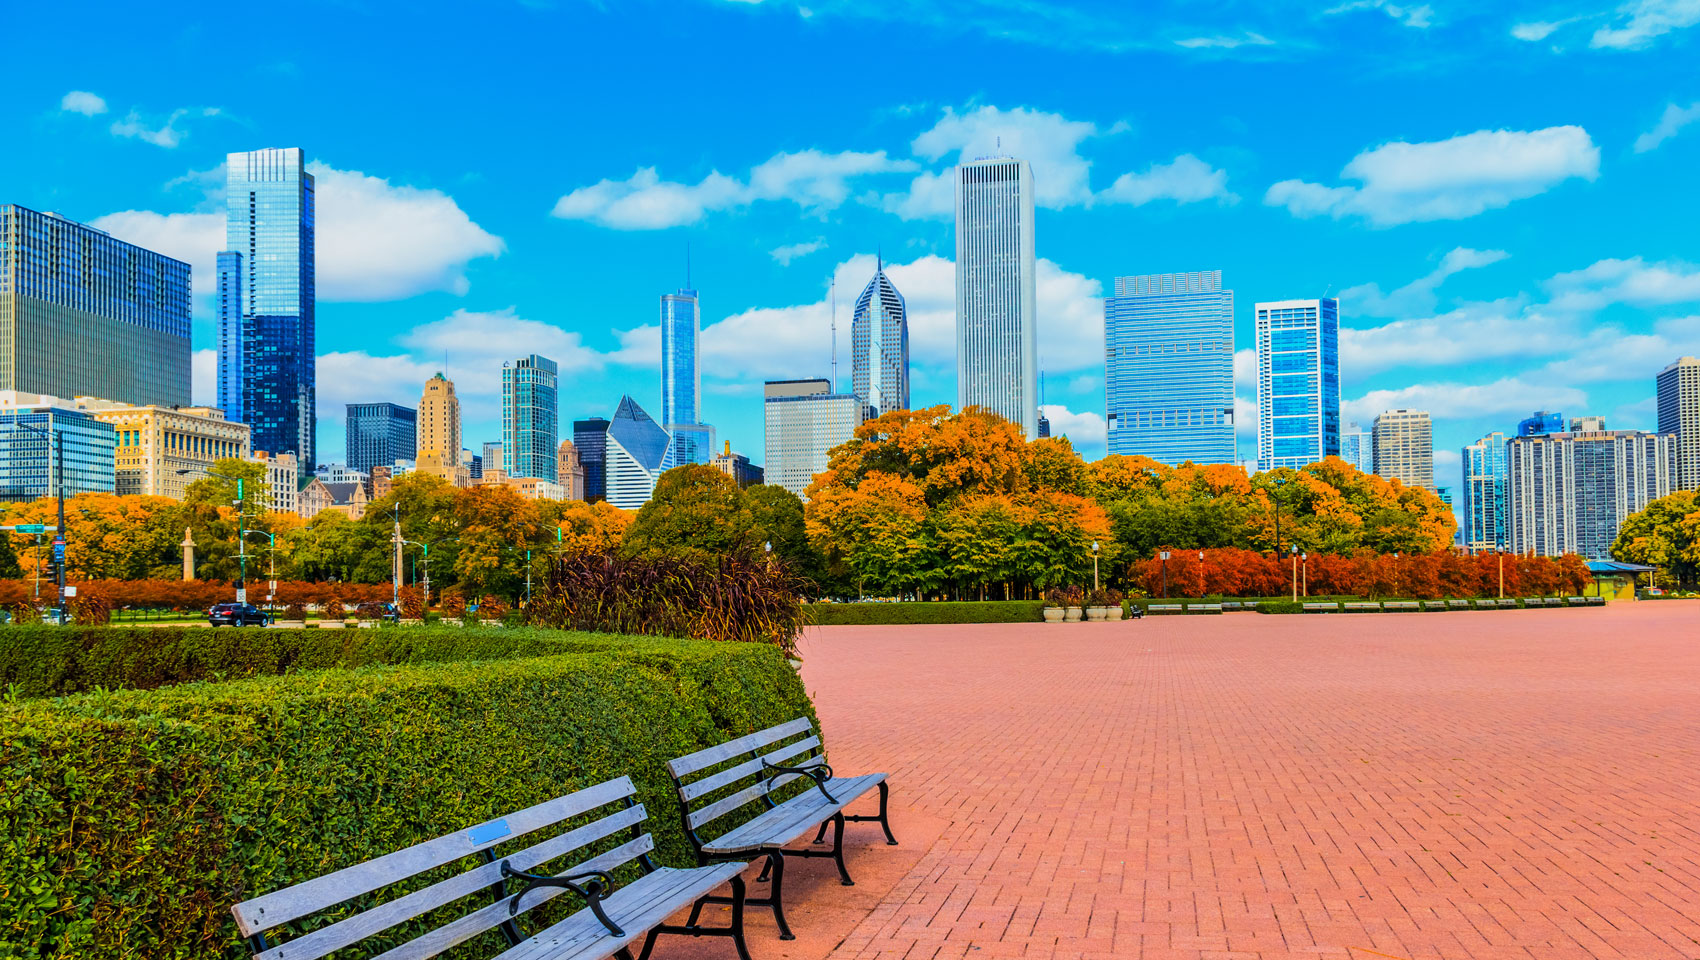 Chicago skyline with fall foliage